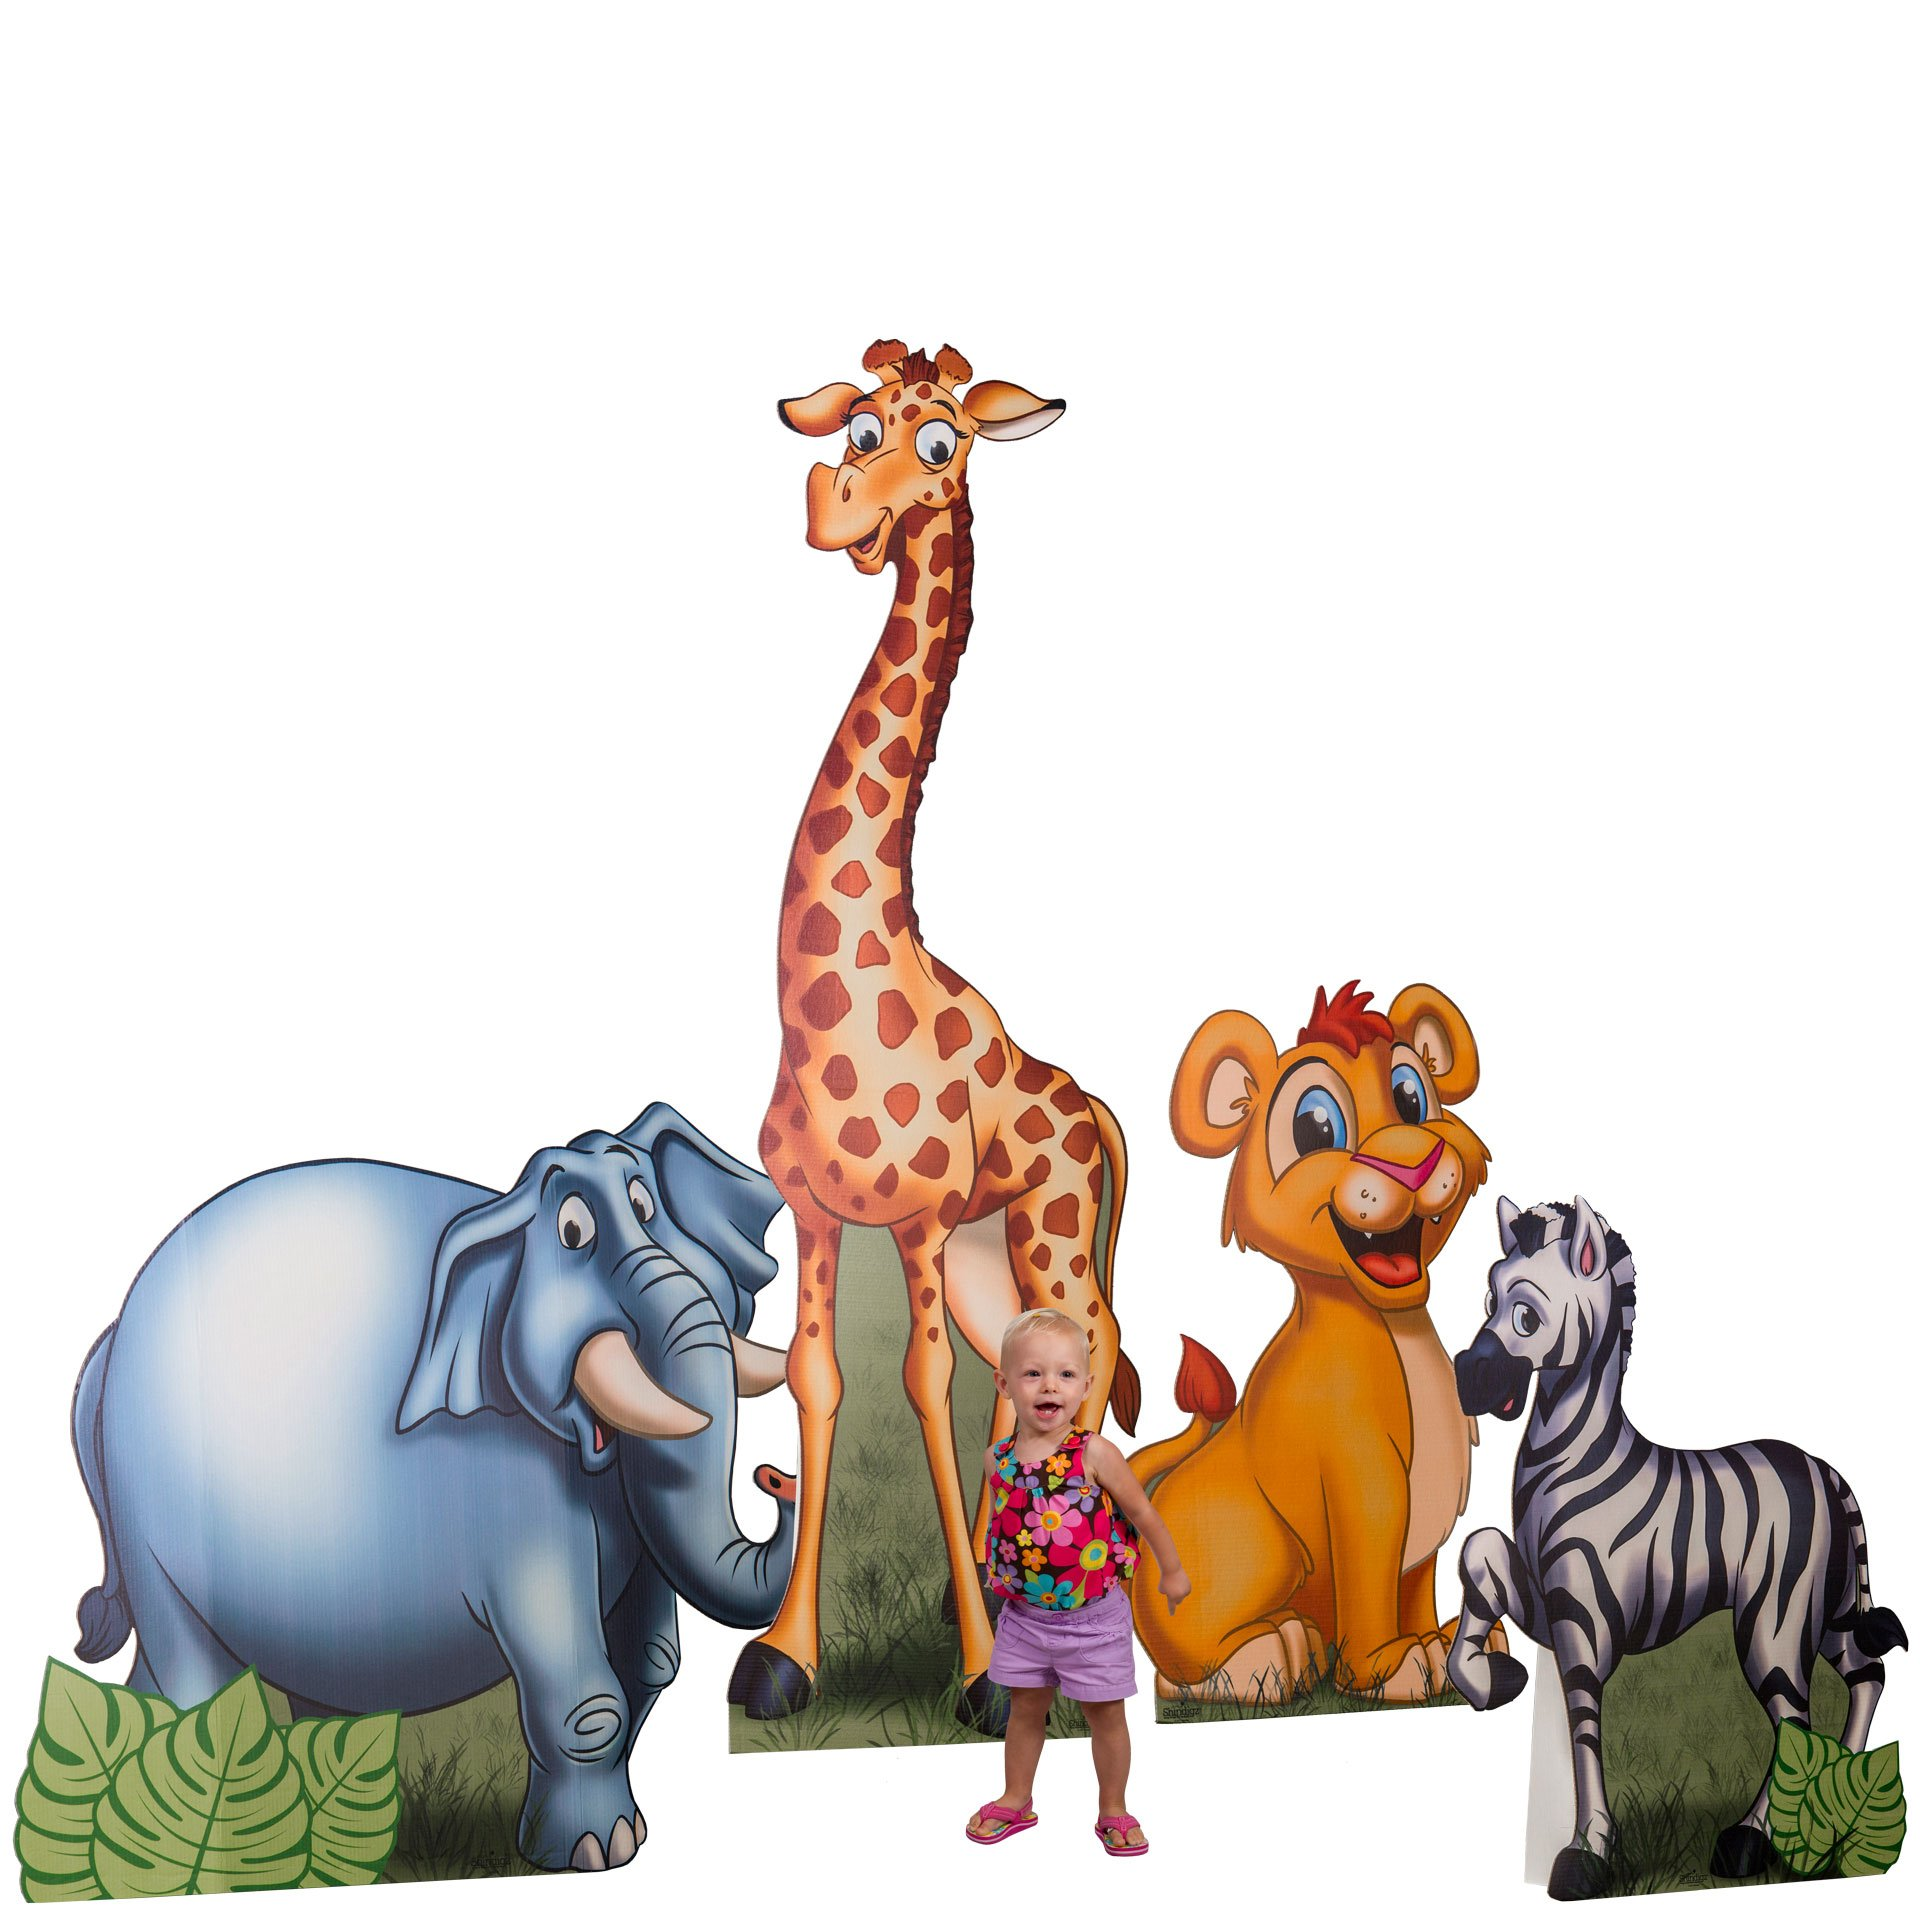 3 ft. to 7 ft. 2 in. Jungle Safari Animals Cardboard Cutout Standee Standup Props Party Supplies Decorations Decor Backdrop Background